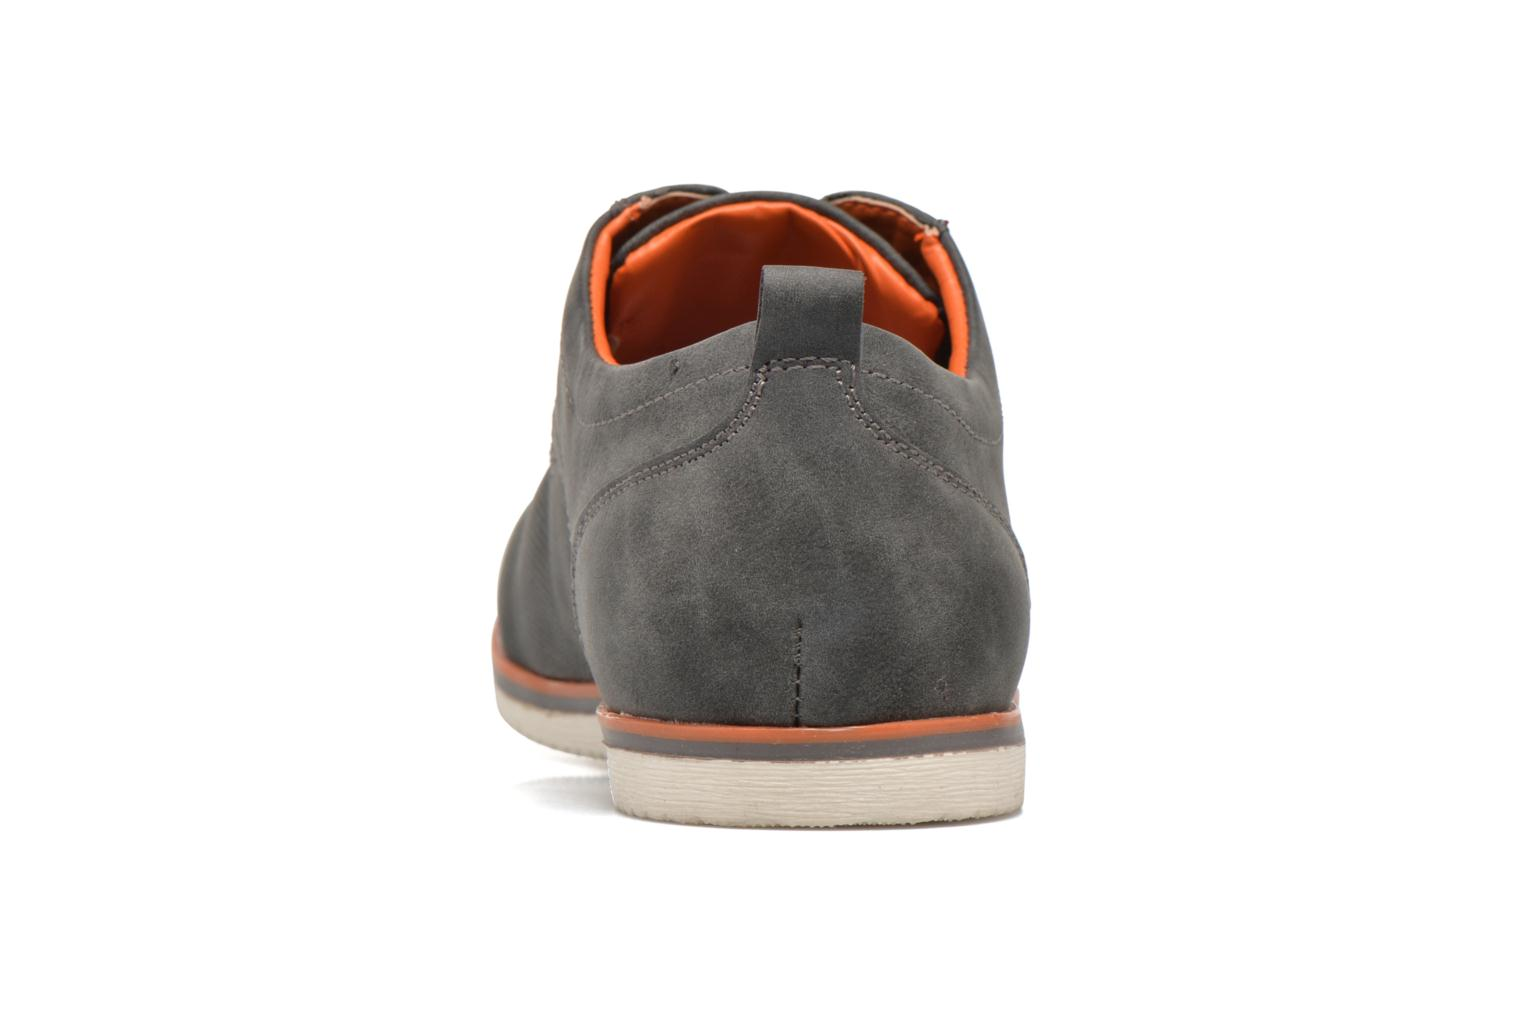 KEHOLE Anthracite / Orange